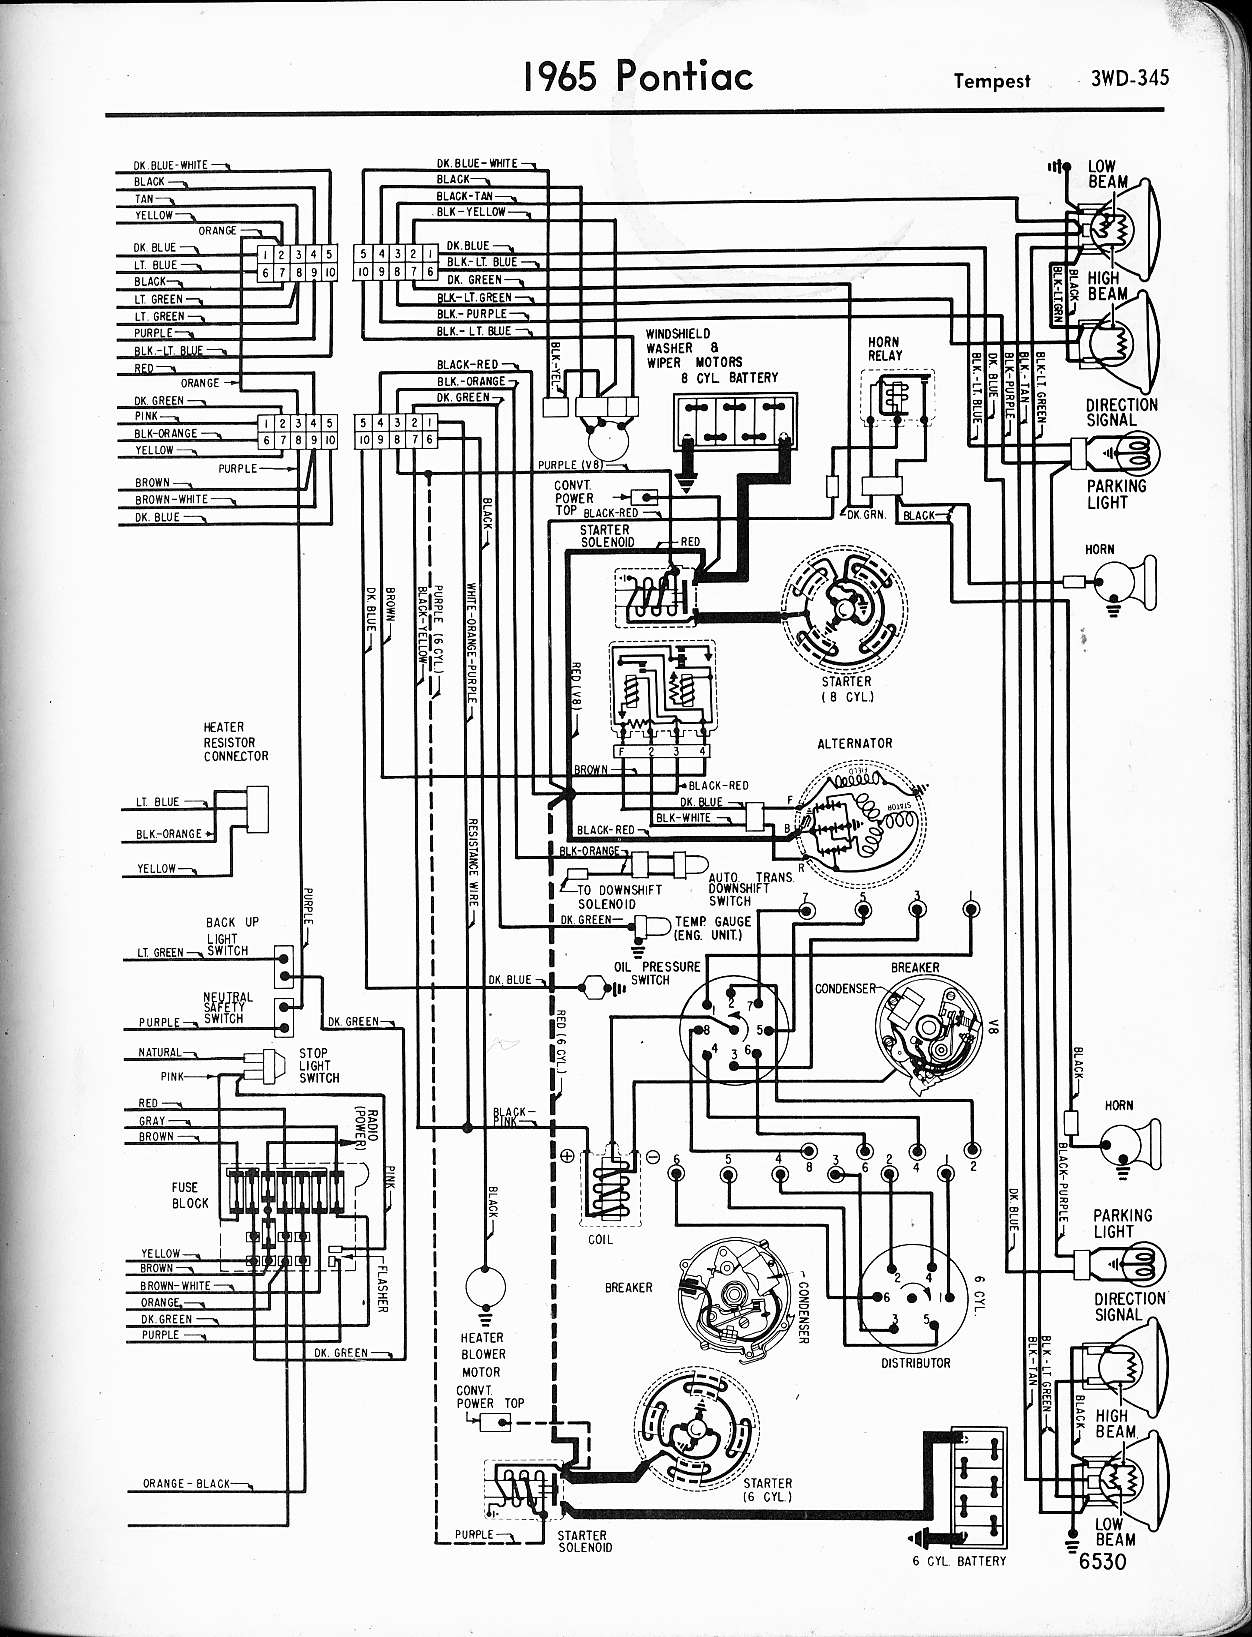 70 Camaro Fuse Box Diagram Archive Of Automotive Wiring 1970 Gto Opinions About U2022 Rh Voterid Co